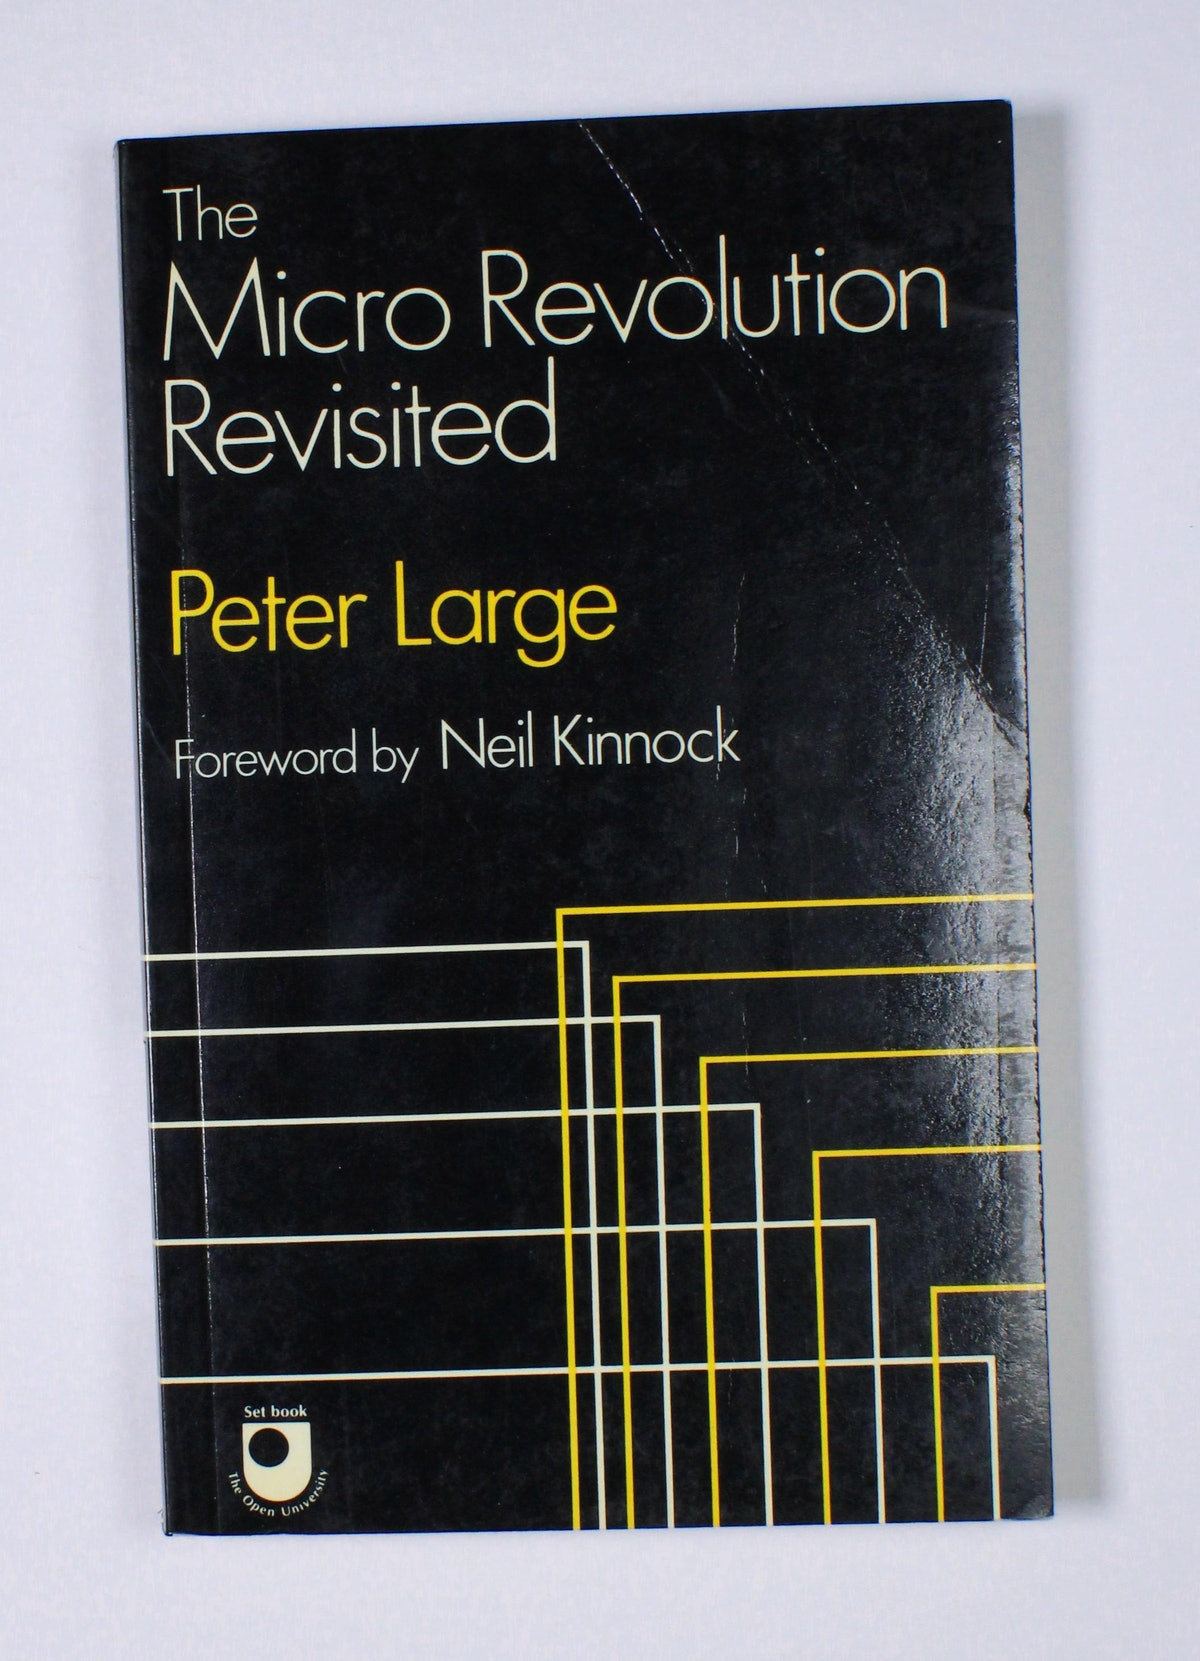 The Micro Revolution Revisited